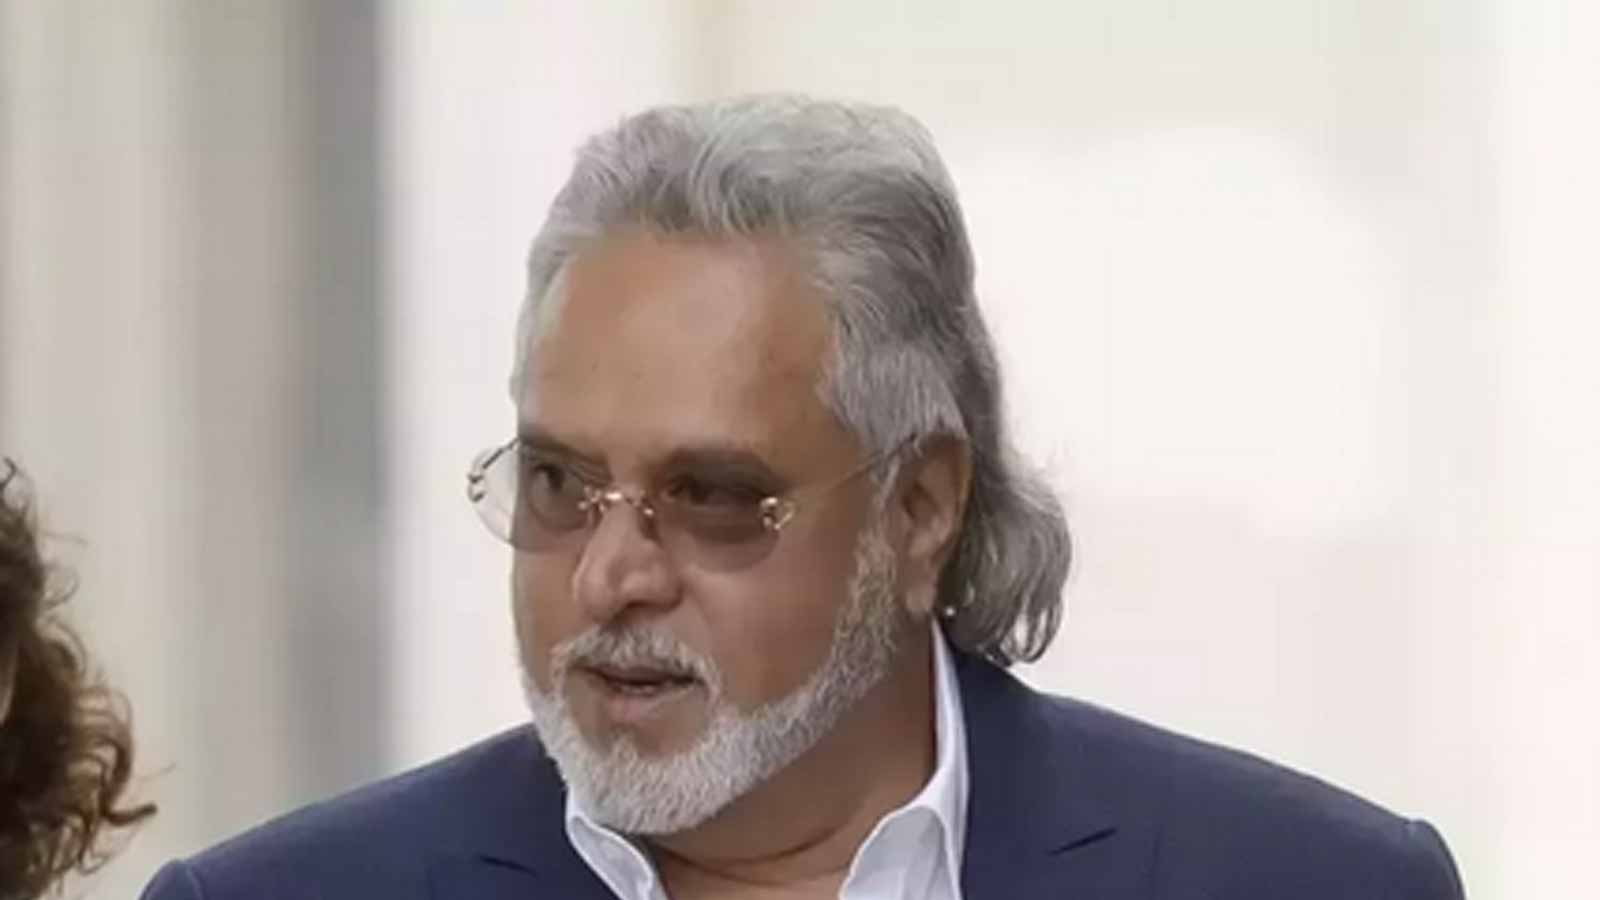 rs-3600-cr-has-been-recovered-from-vijay-mallya-consortium-of-banks-led-by-sbi-tells-sc